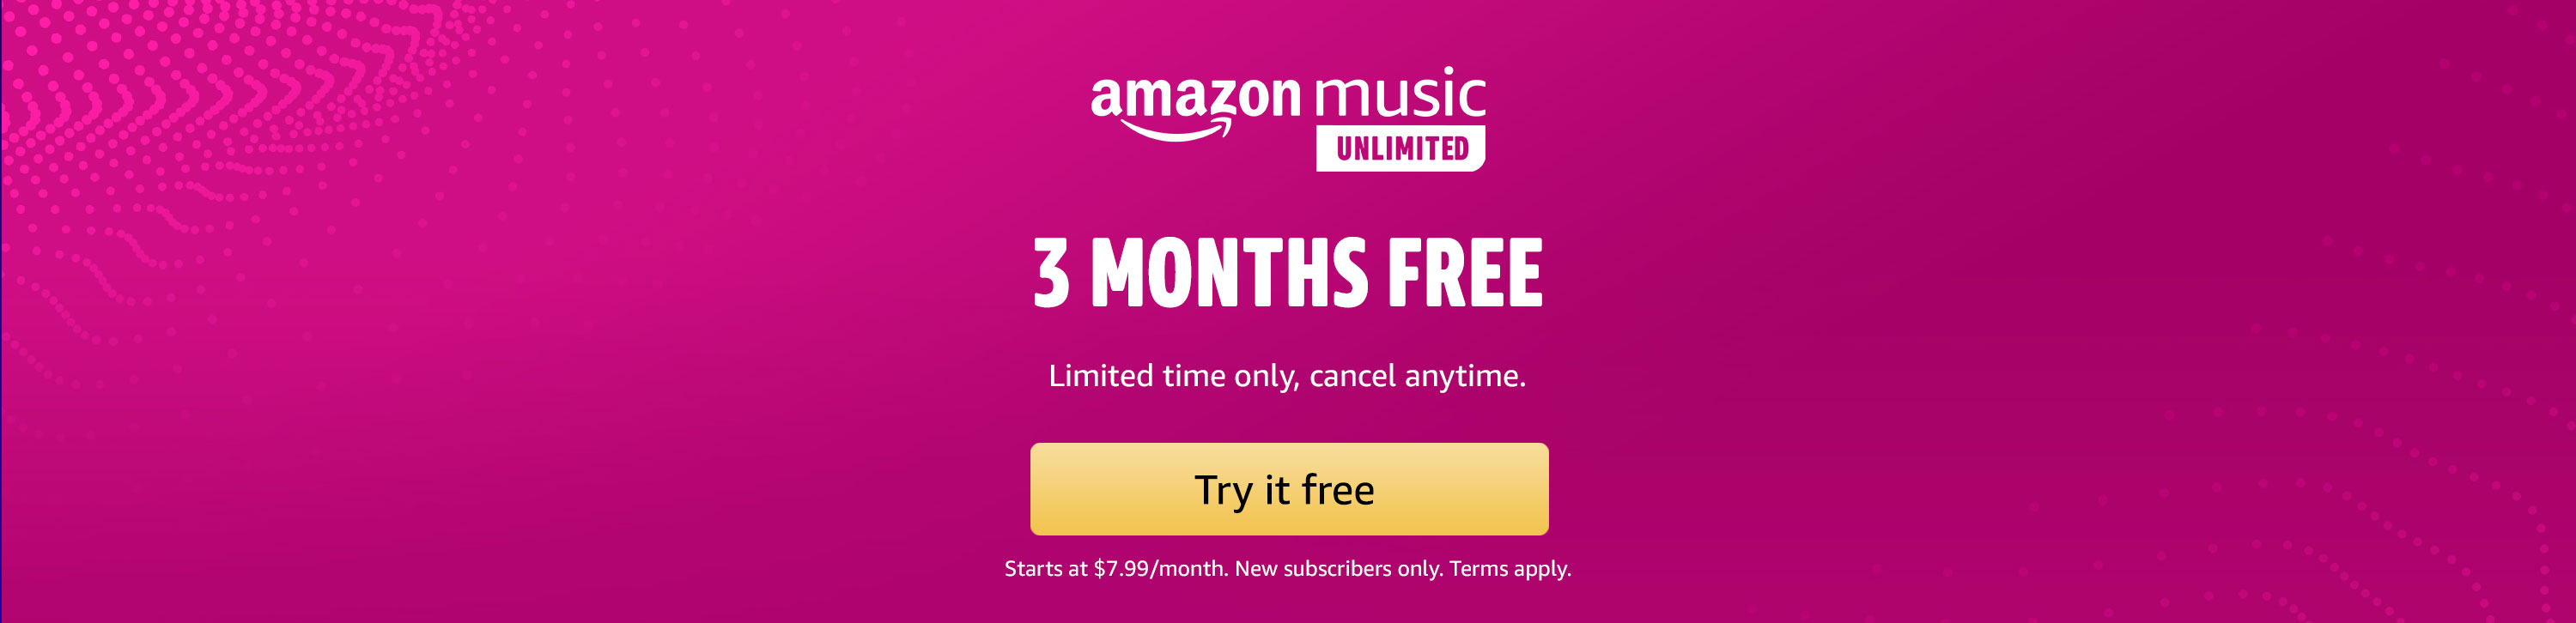 Amazon Music Unlimited, Access to 60 Million Songs, listen to any song, anywhere, Try now